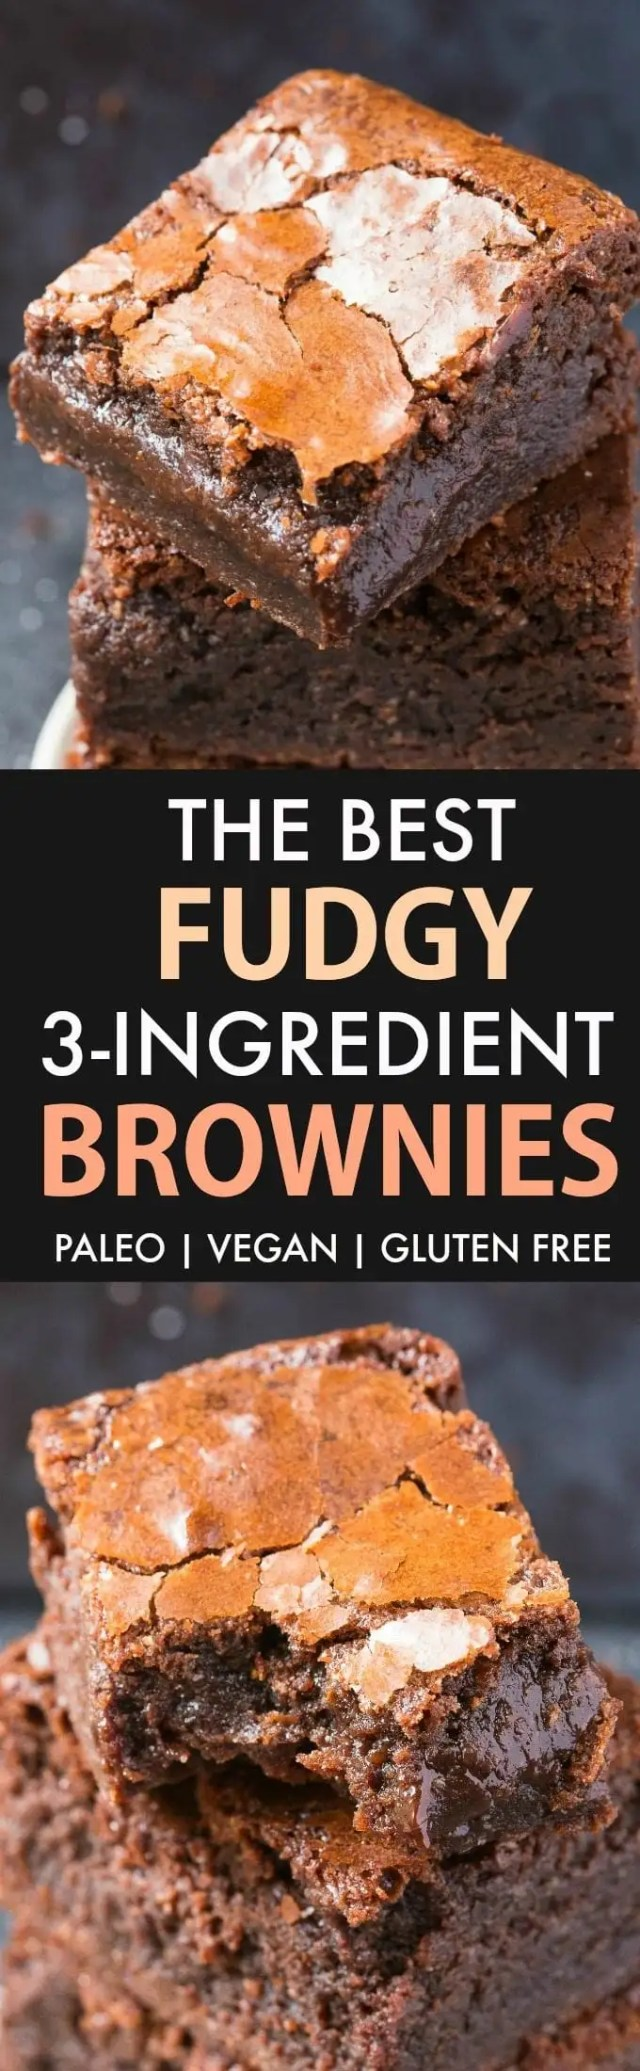 Best Fudgy 3-Ingredient Brownies (Paleo, Vegan, Gluten Free)- Easy, one-bowl recipe for the best ooey, gooey brownies ever- Crispy and crackly on top and BETTER than any boxed mix! {v, gf, p, df recipe}- thebigmansworld.com #brownies #paleo